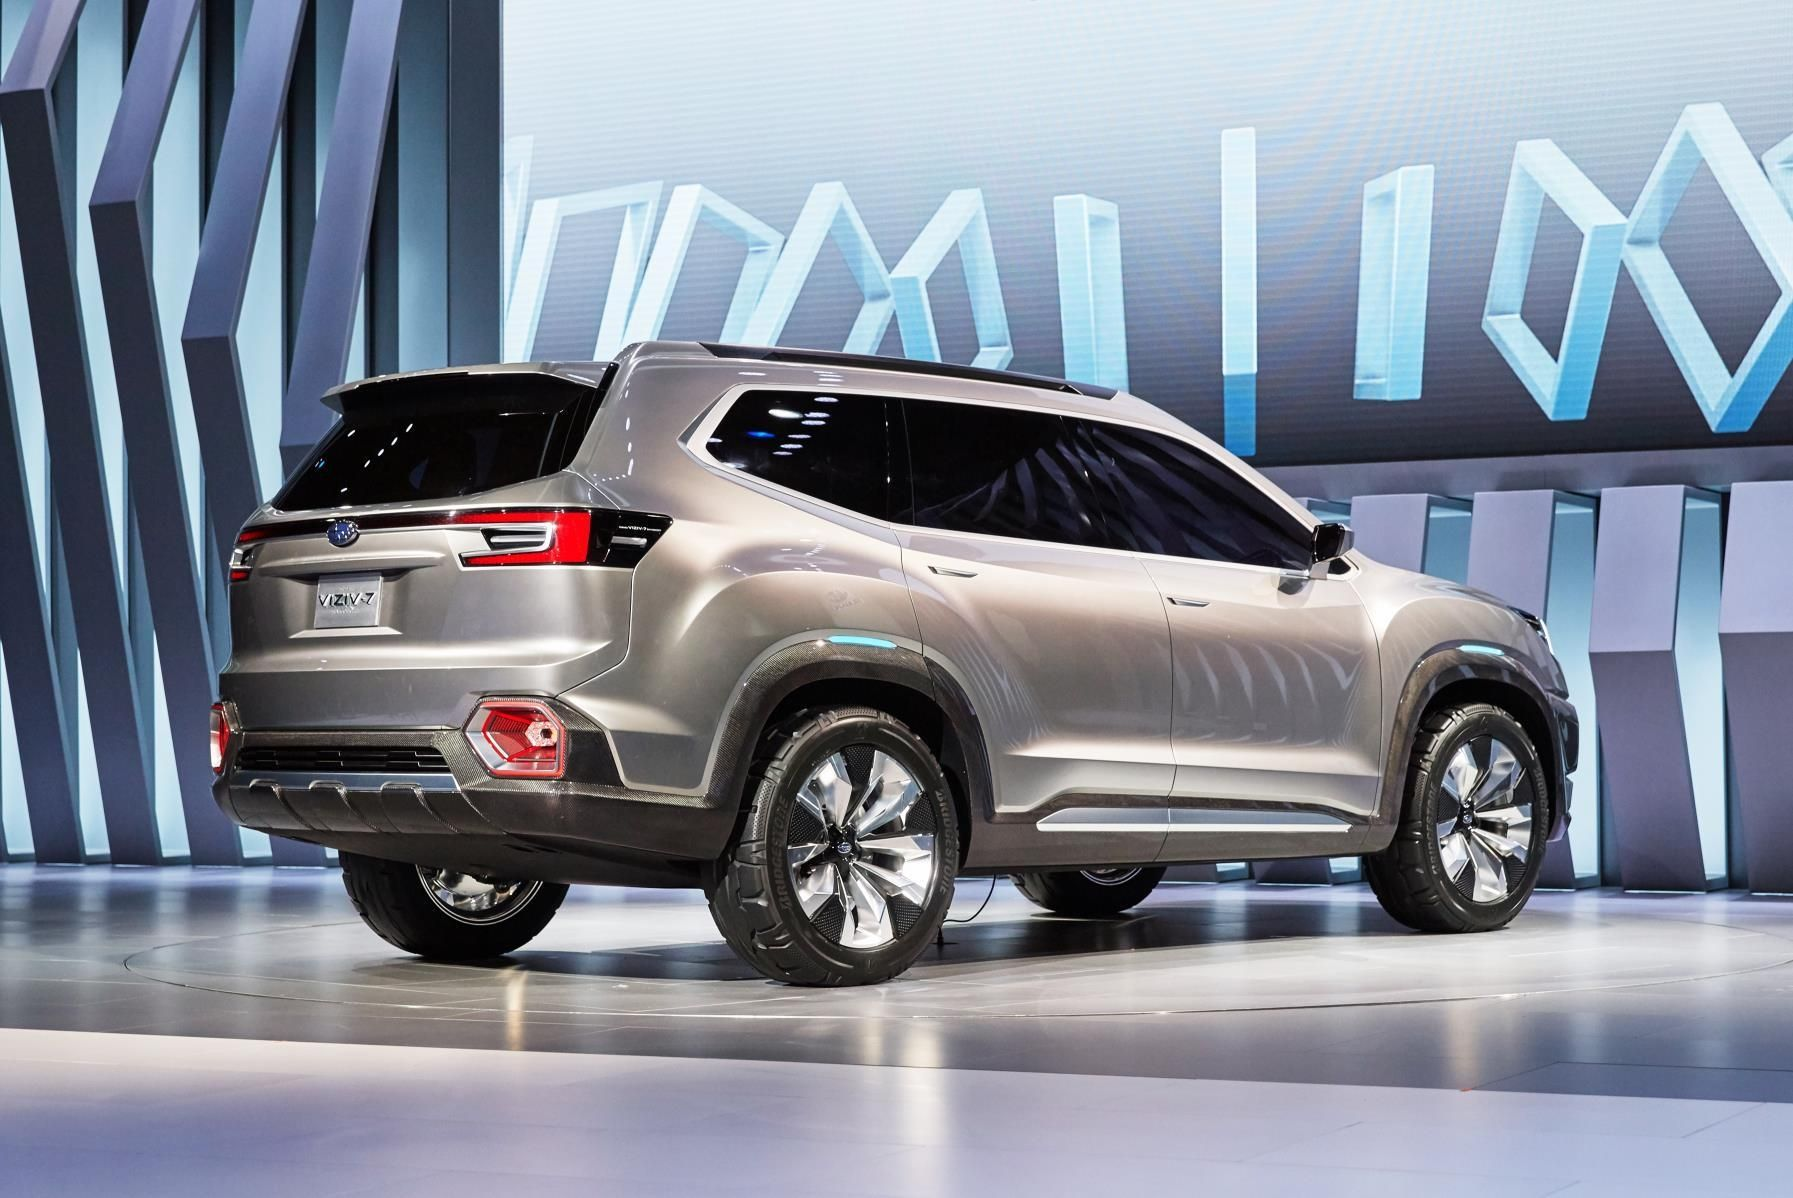 2019 subaru tribeca mid size 7 seat suv previewedviziv 7 intended for suv 2019 electric cars. Black Bedroom Furniture Sets. Home Design Ideas